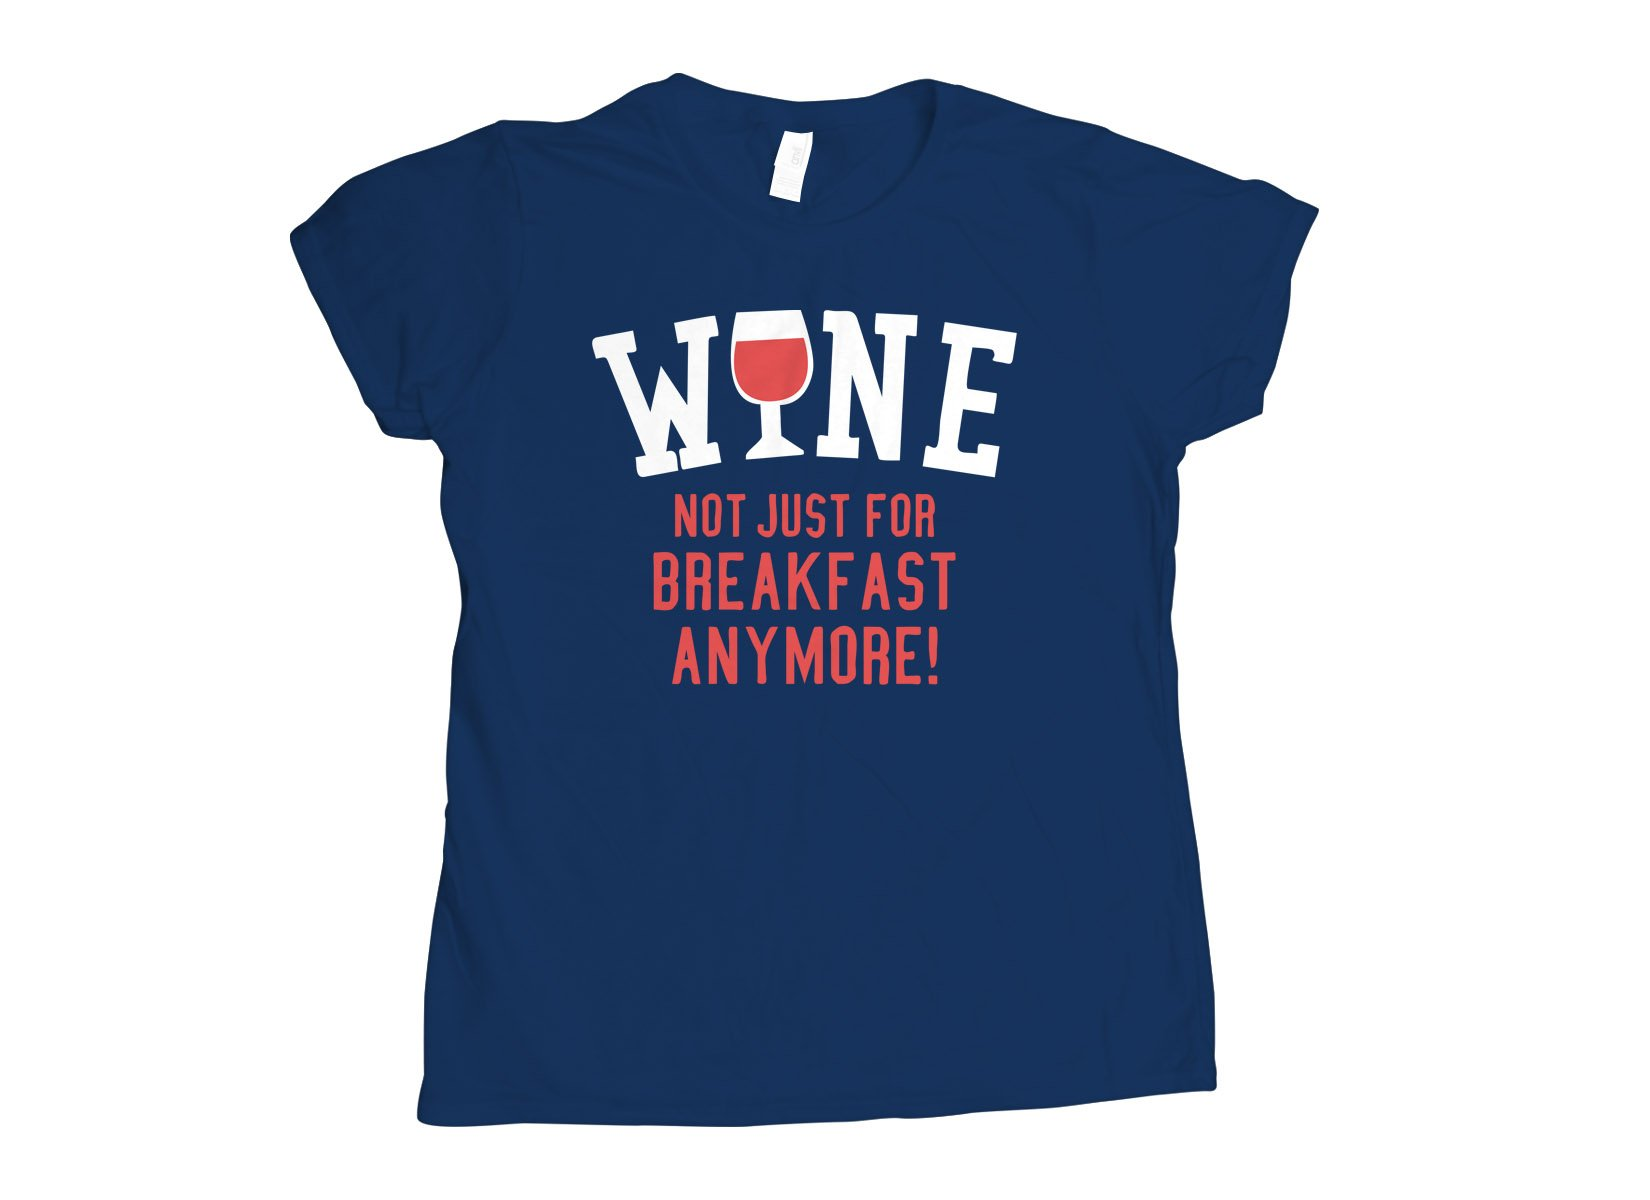 Wine, Not Just For Breakfast Anymore on Womens T-Shirt